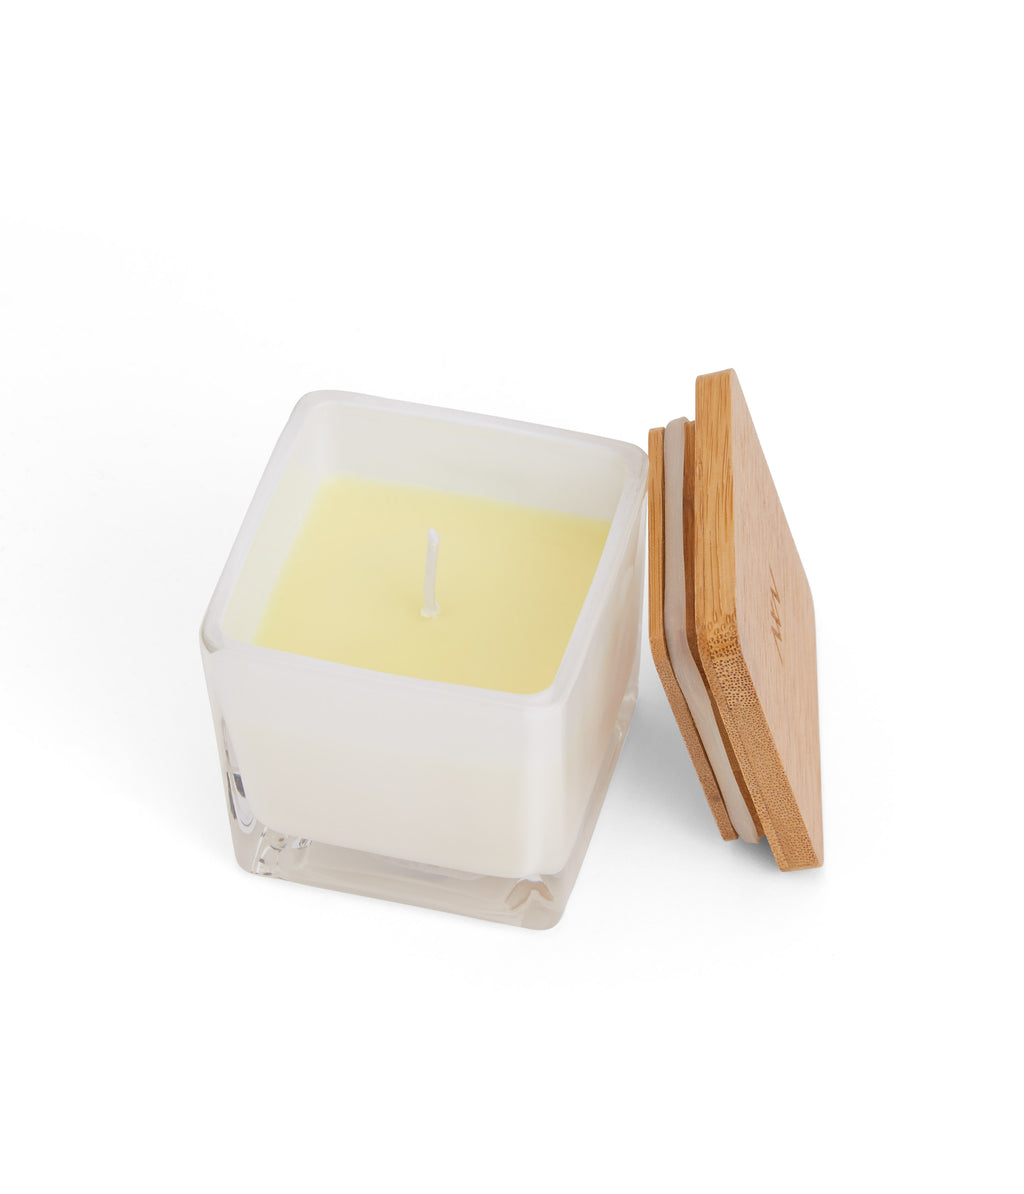 GOODGIRL Candle - White